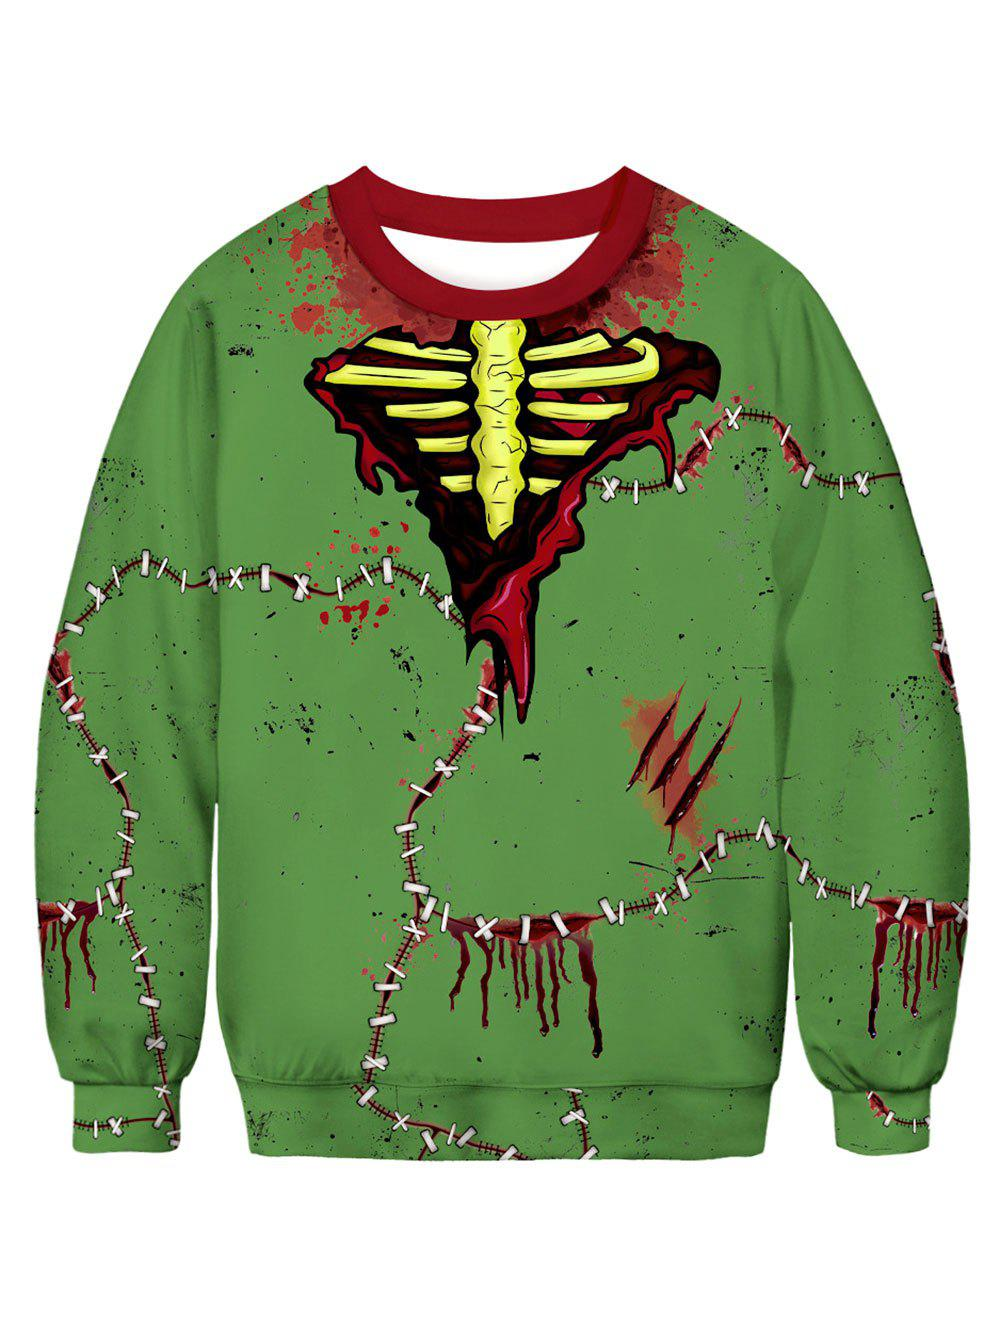 Bloodstain Stitching Printed Sweatshirt - CLOVER GREEN L